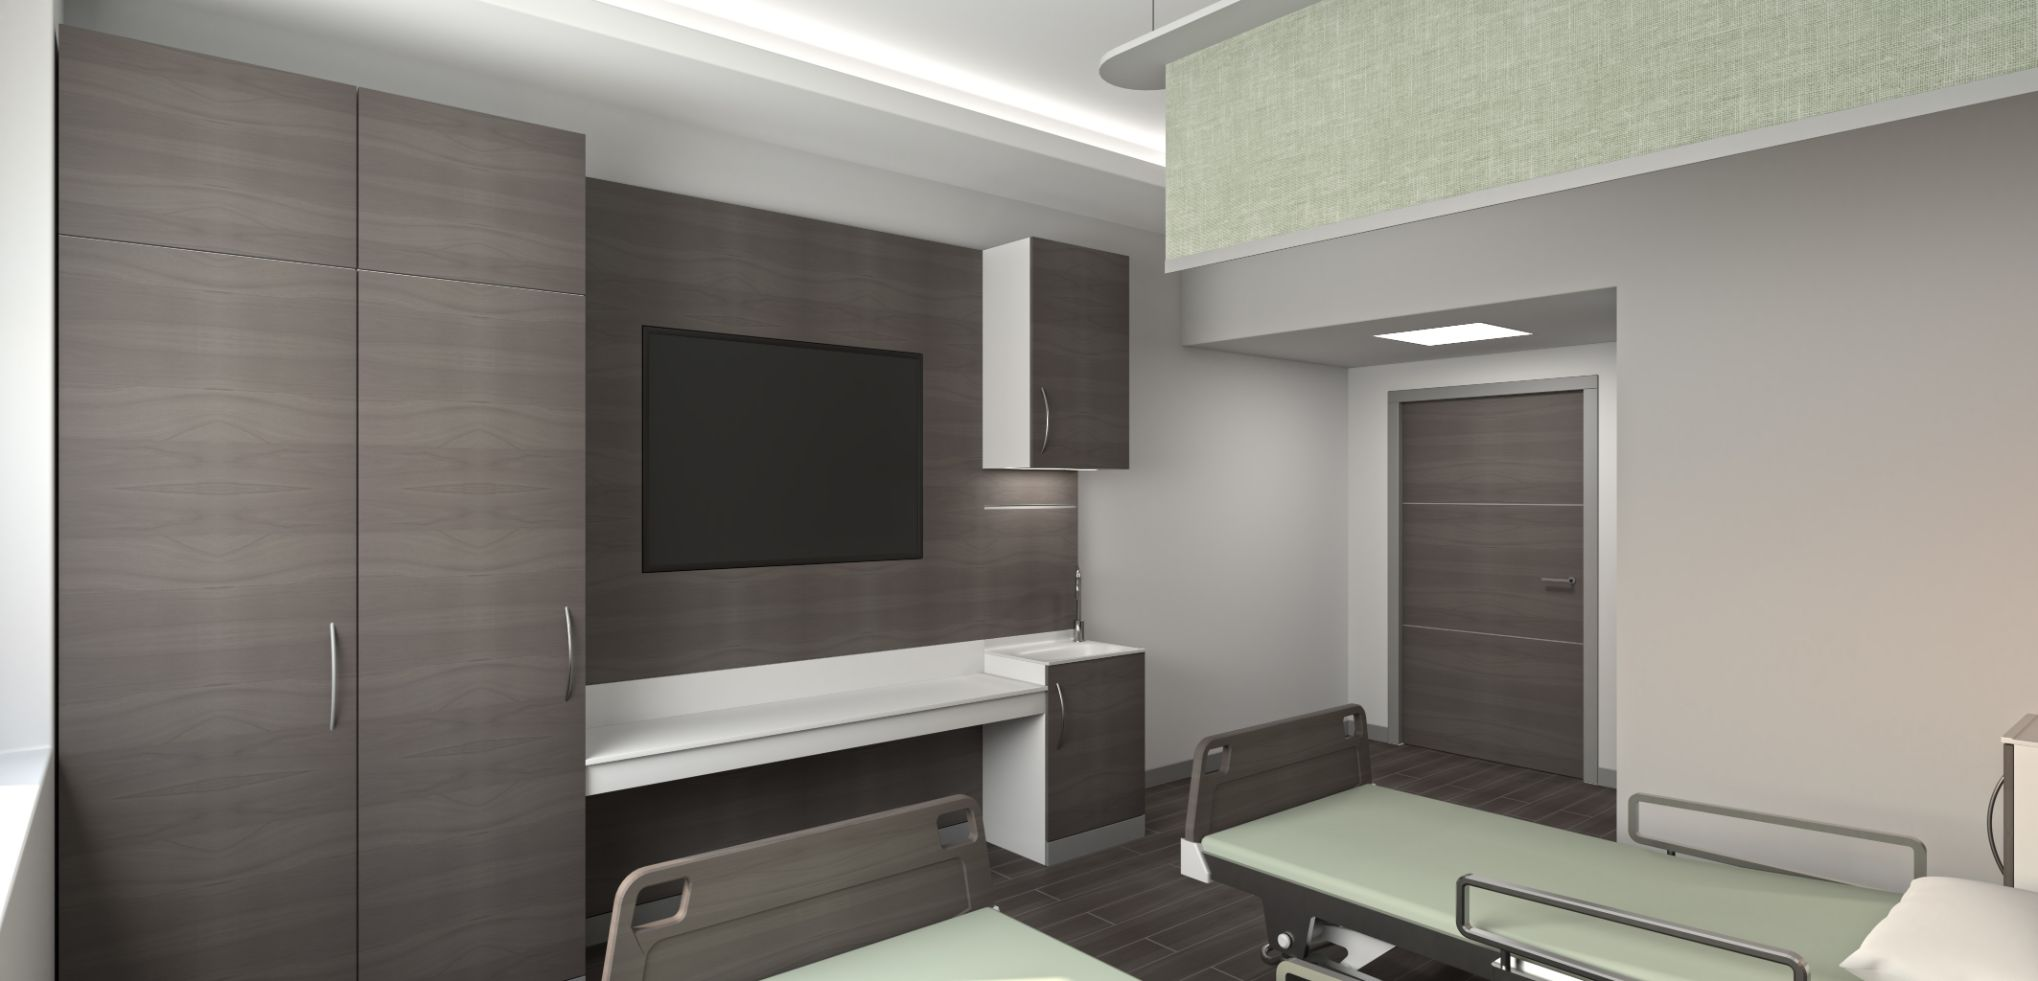 Patient room integrated cabinet partition